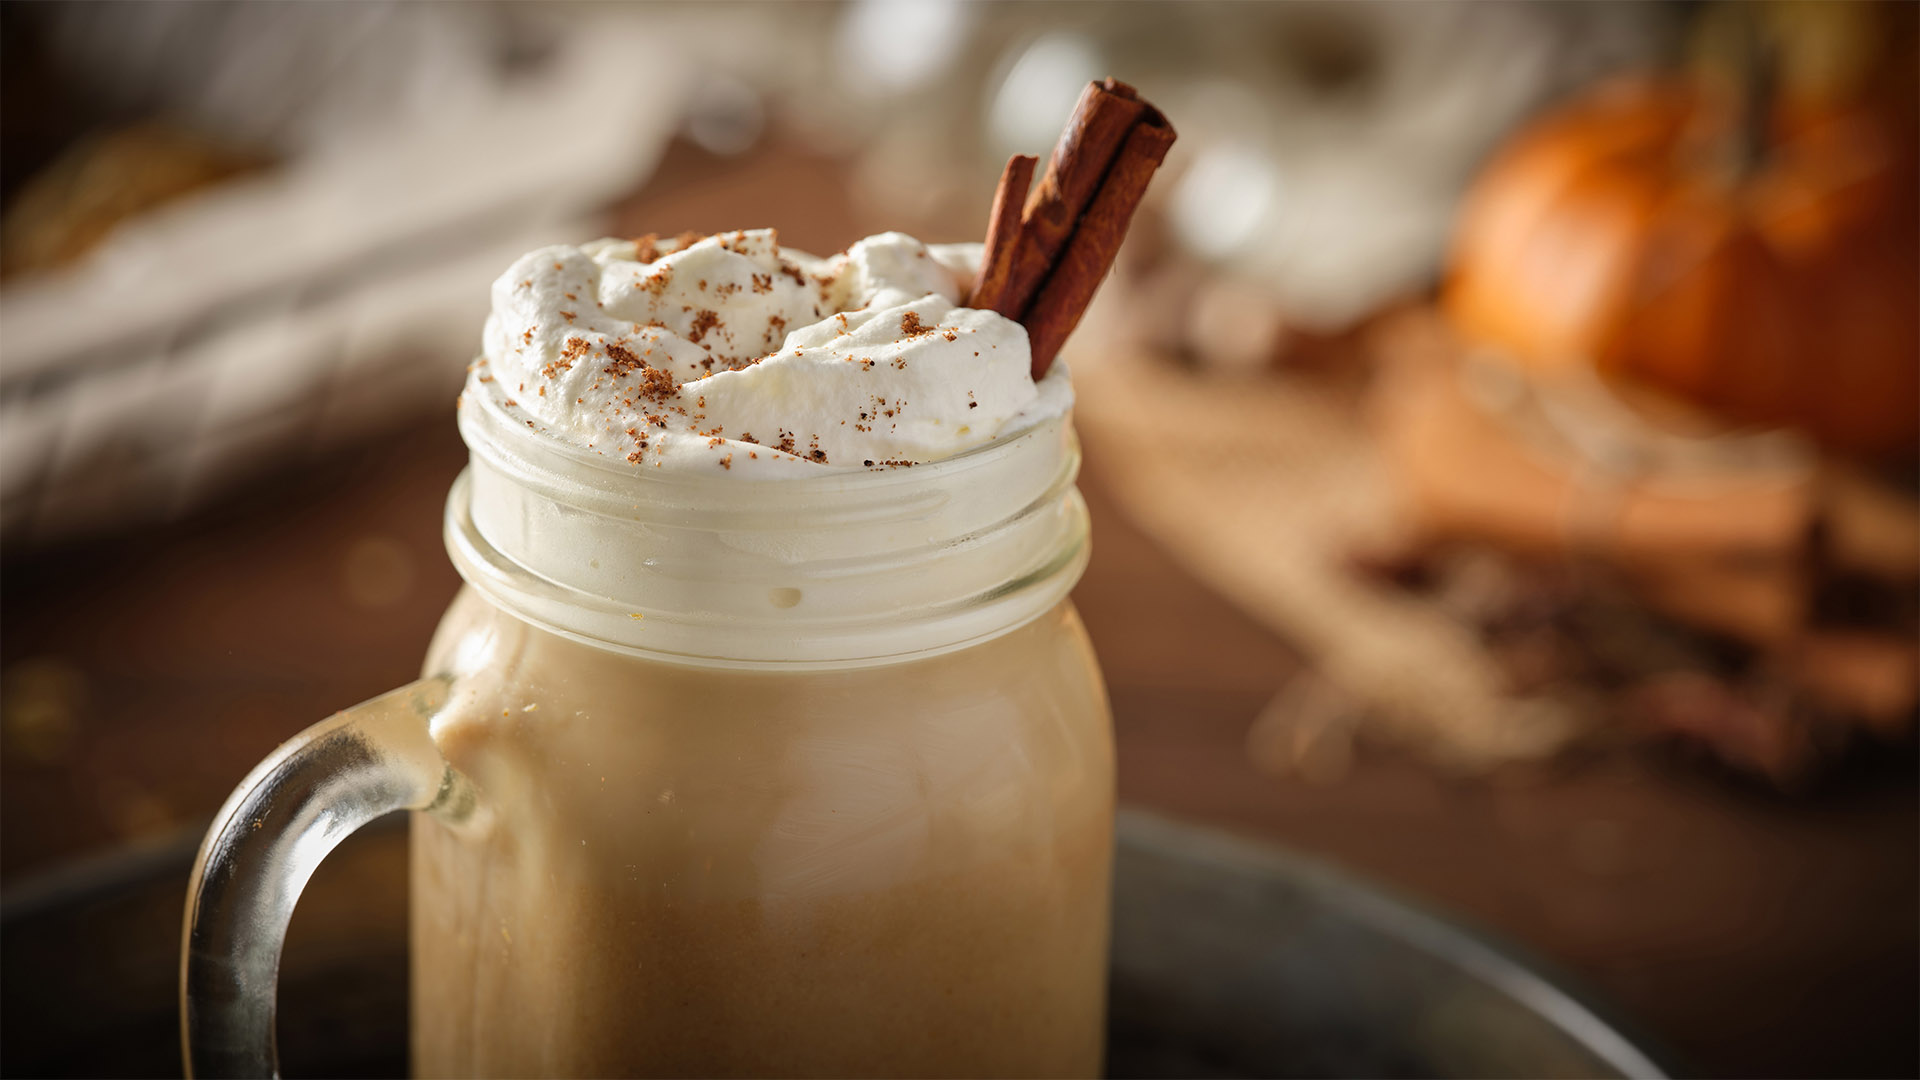 Pumpkin spice latte topped with whipped cream and a straw, inside a glass mason jar sitting on a blue plate. Faded background.